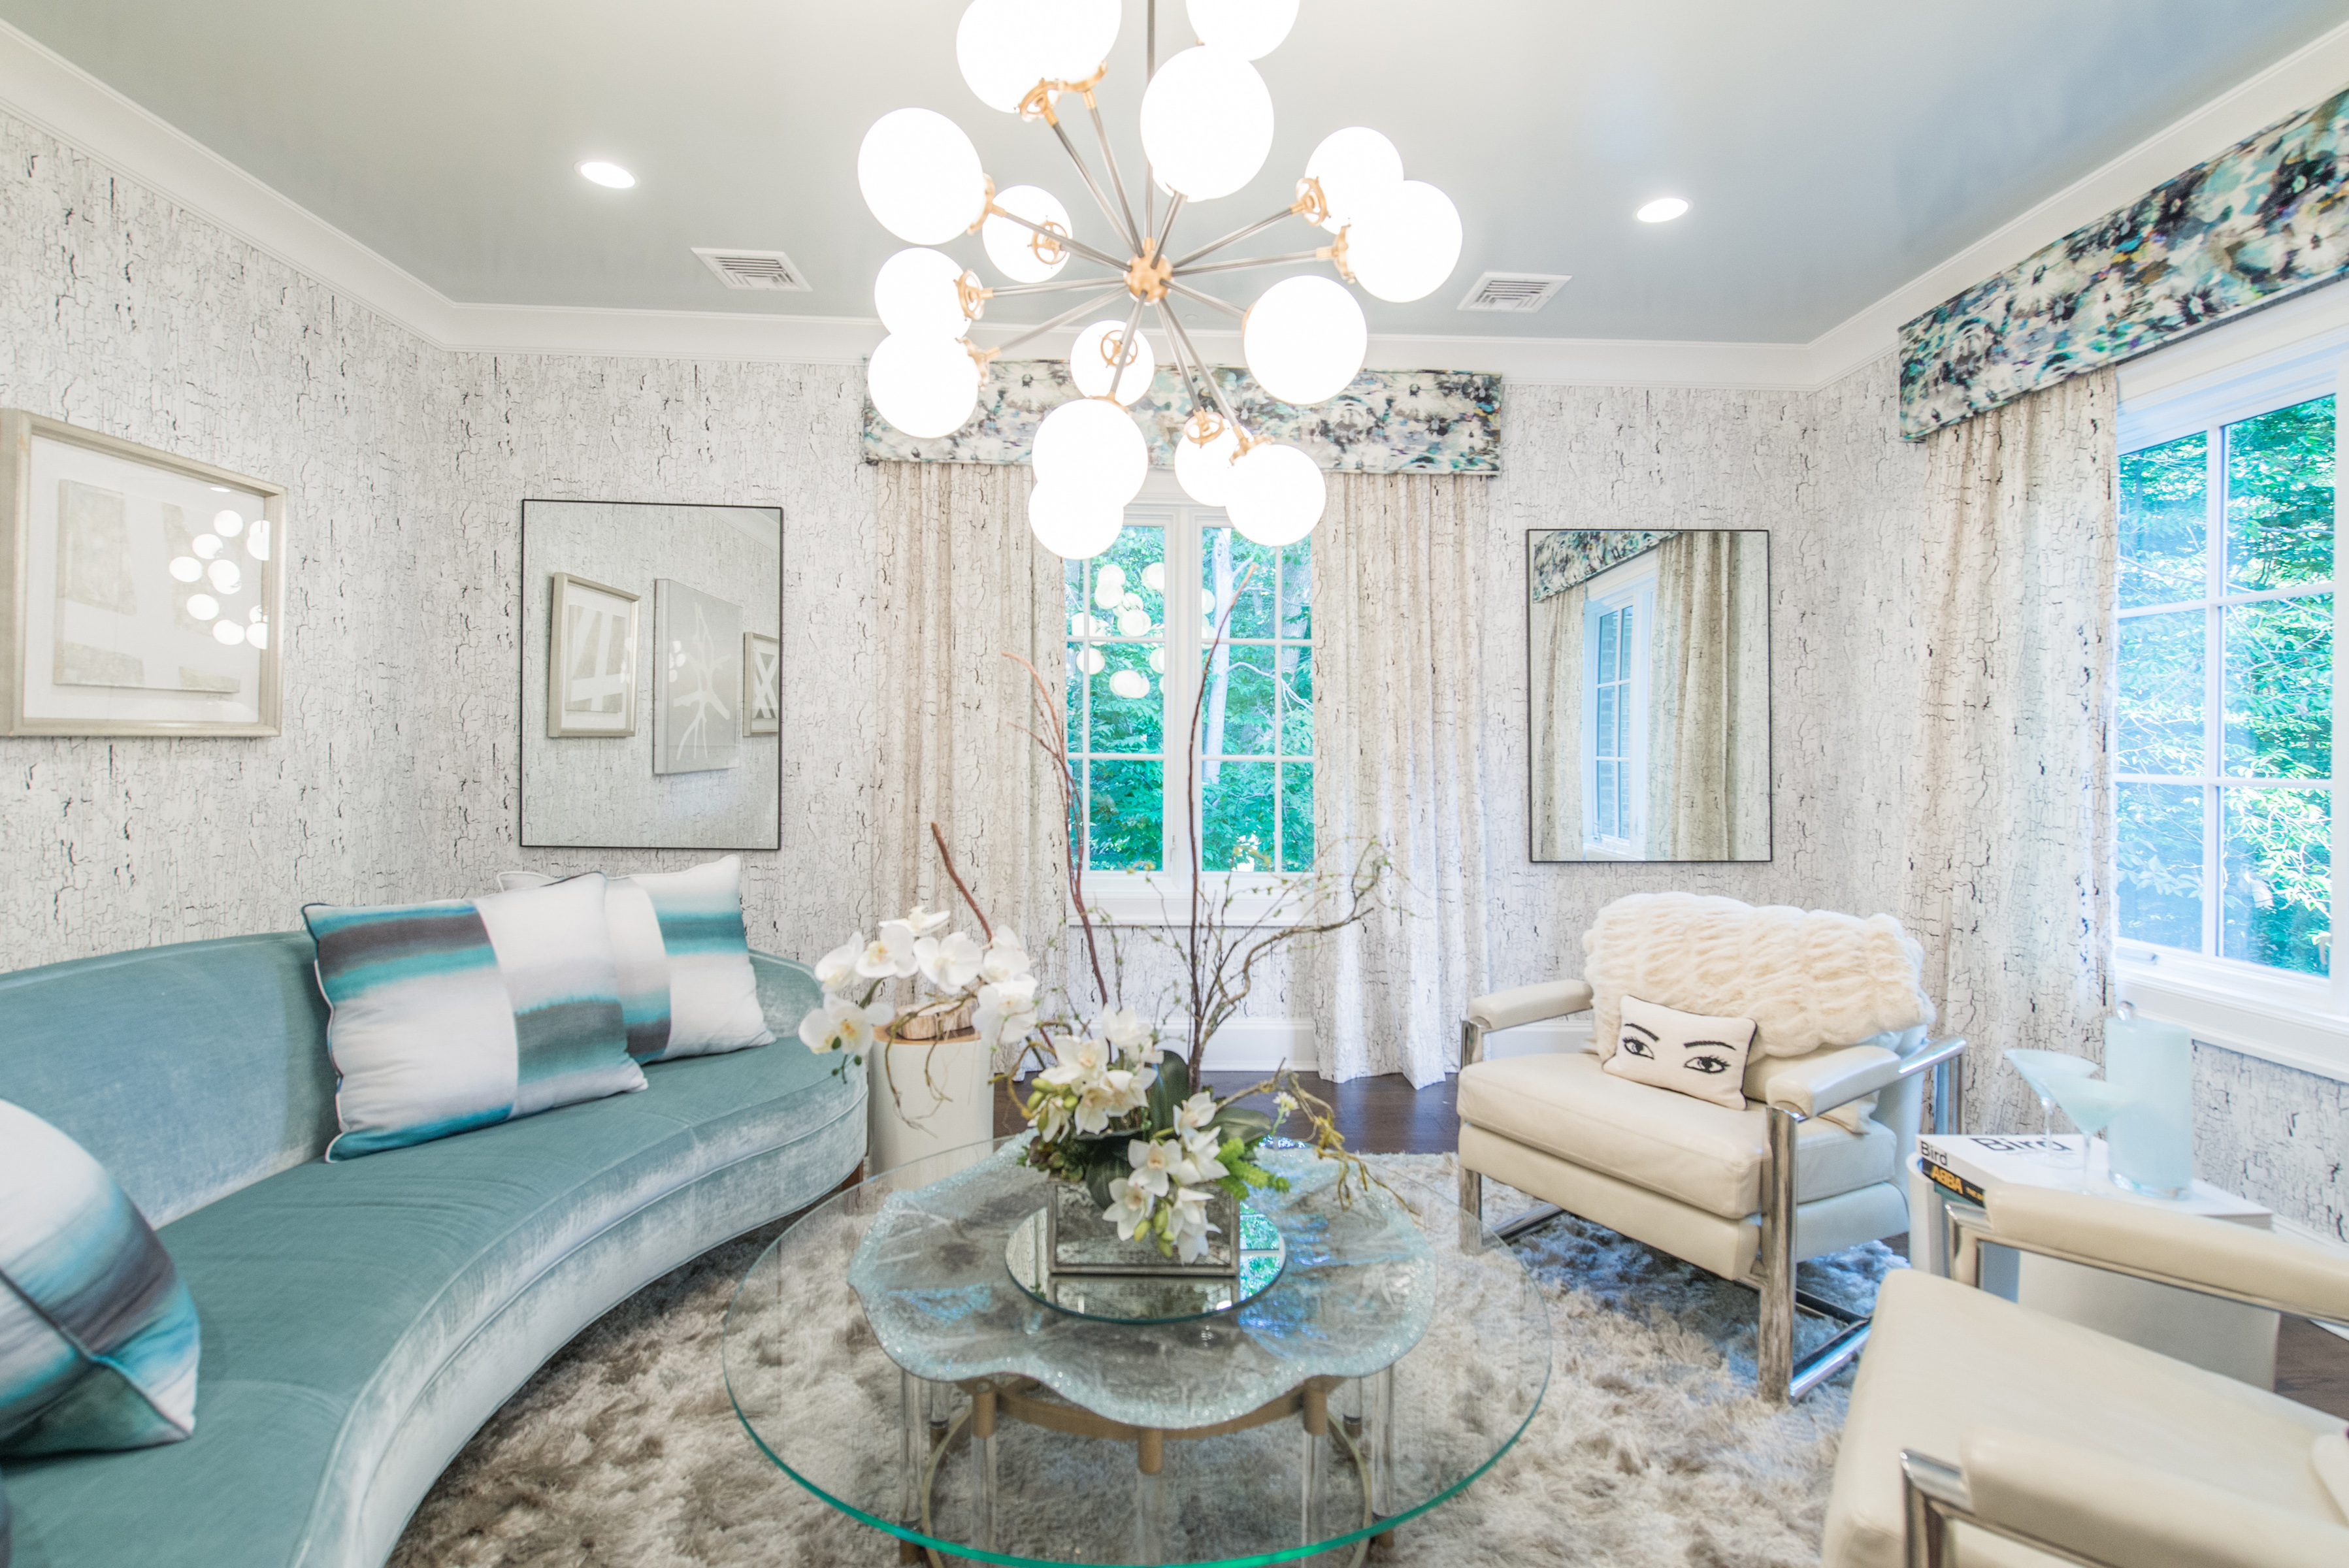 Emily wallach bergen county and new york interior design westerly for Bergen county interior designers